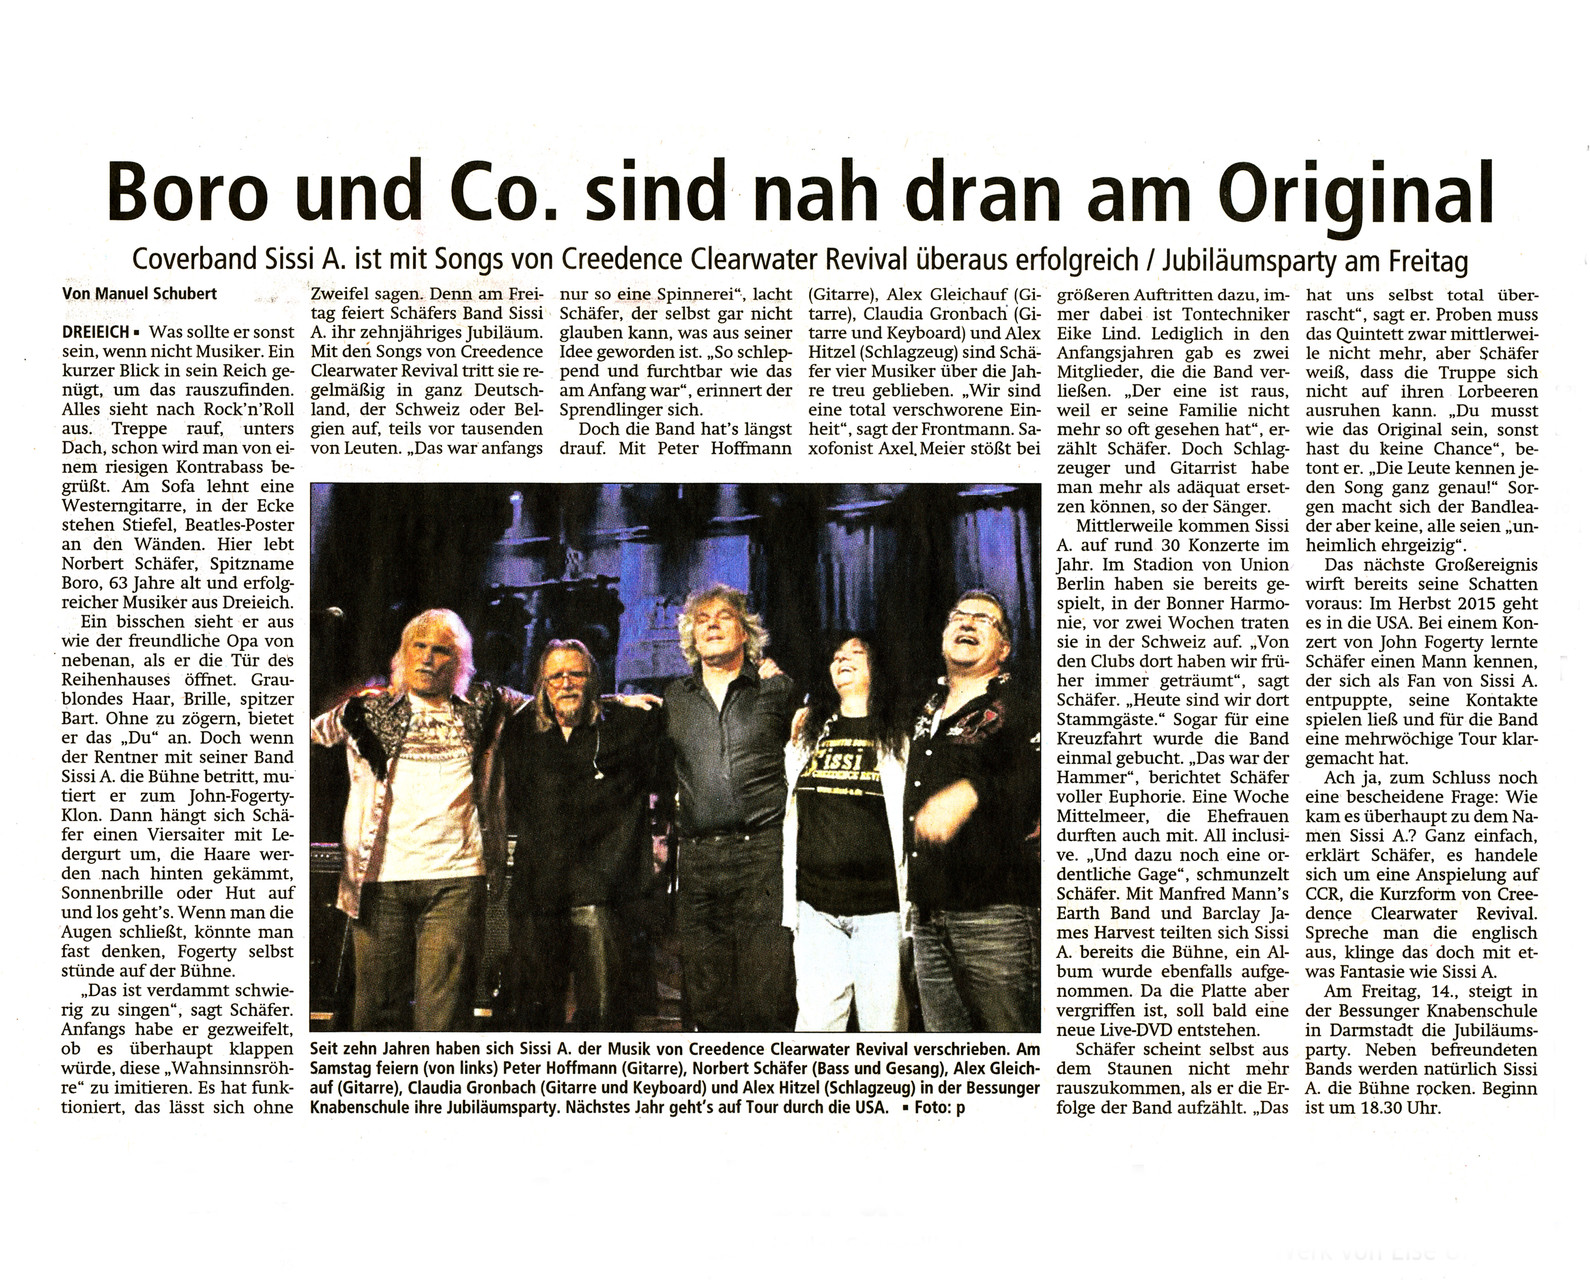 Offenbach Post, 12. November 2014